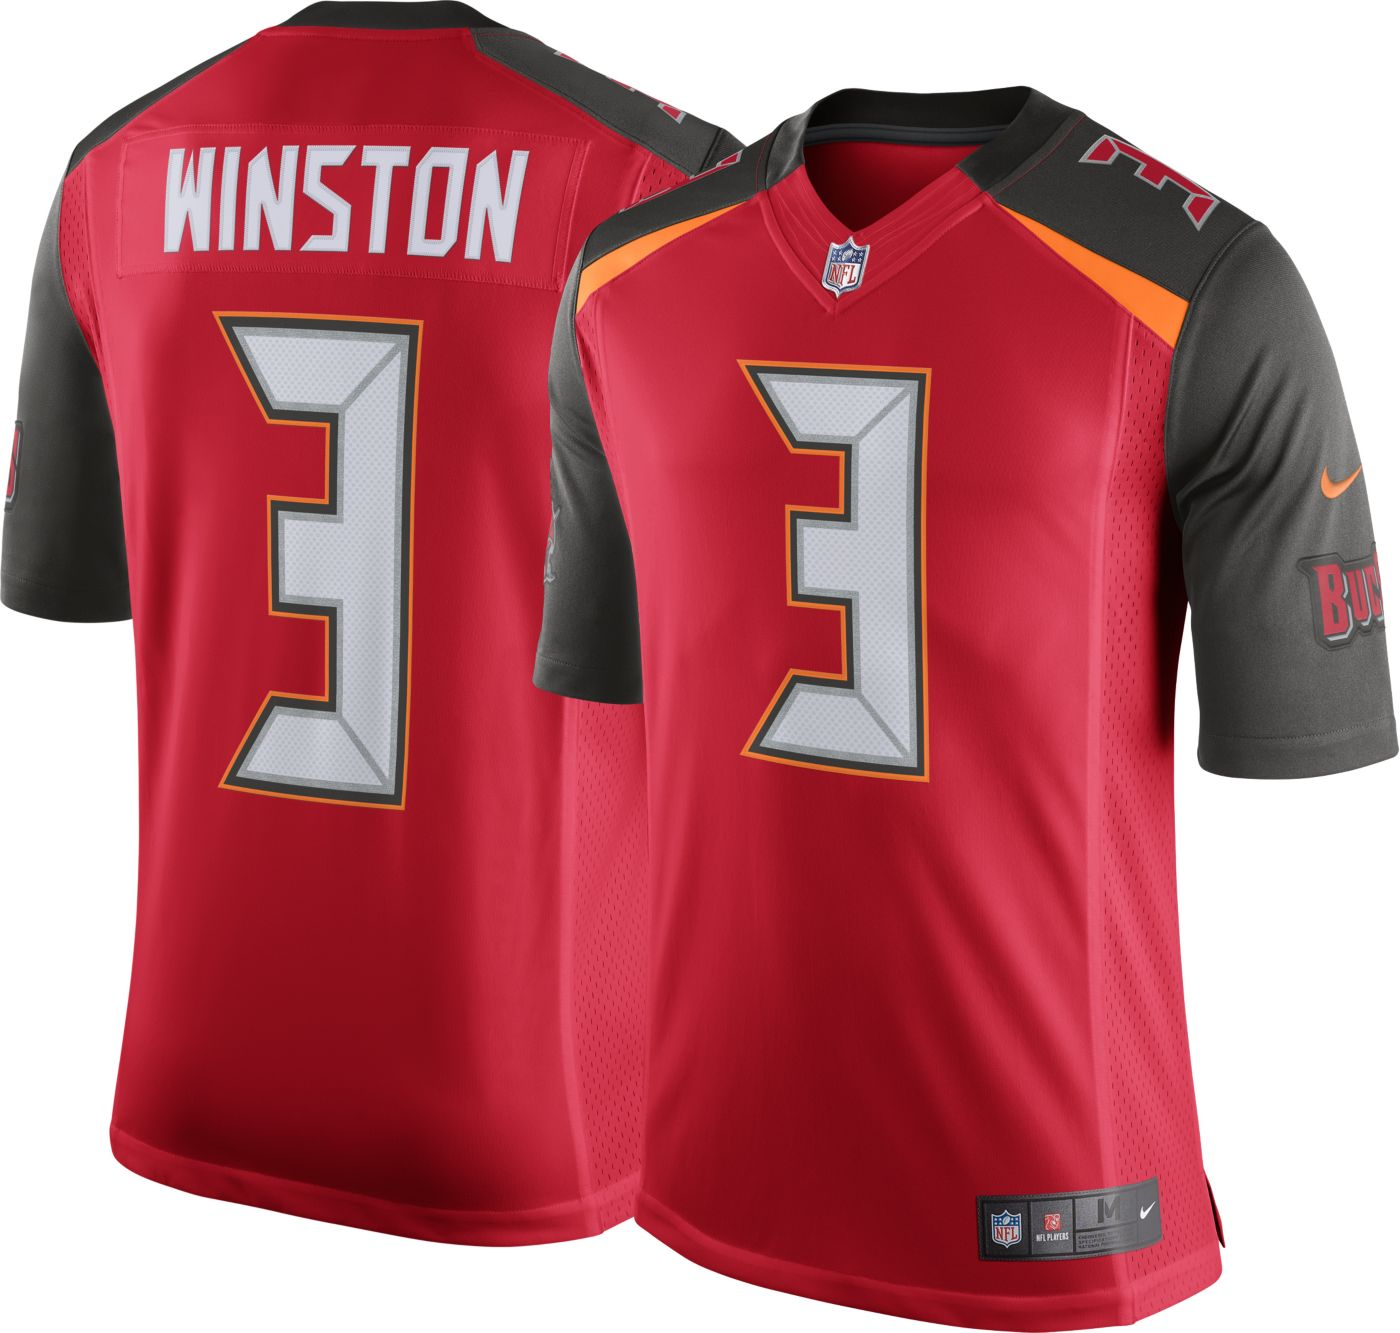 Nike Men's Home Limited Jersey Tampa Bay Buccaneers Jameis Winston #3